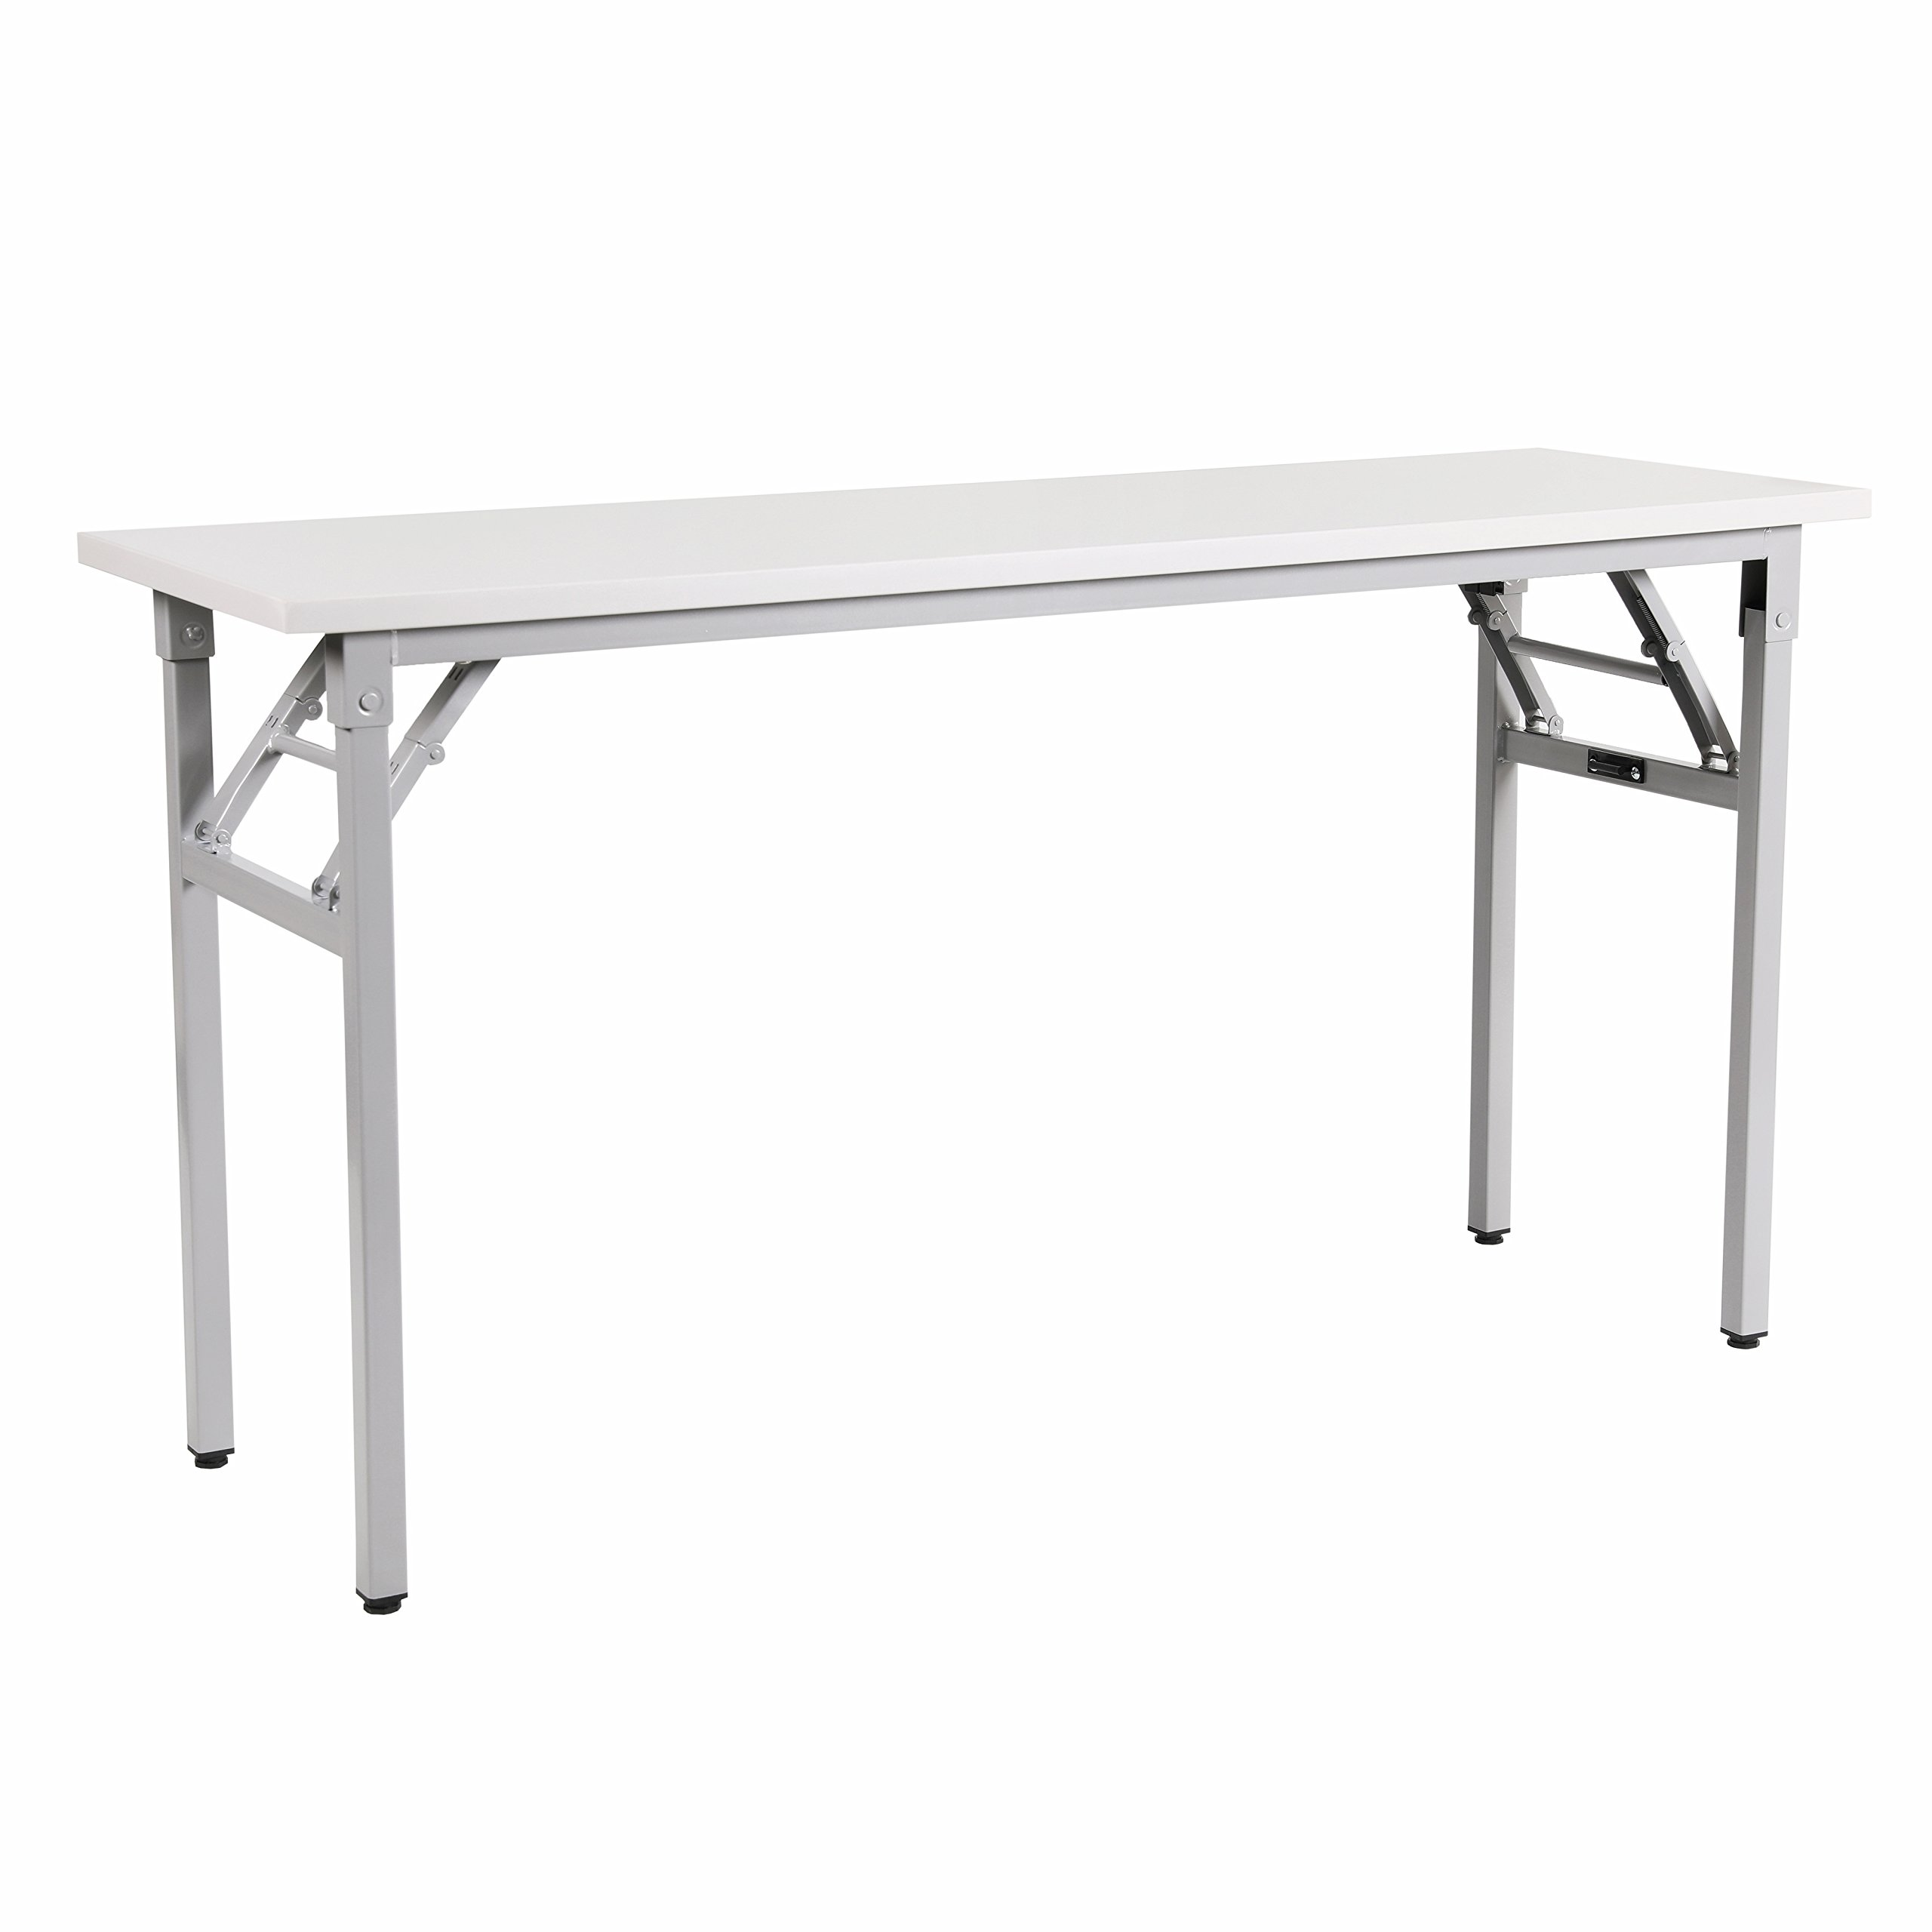 Cheap Meeting Table Malaysia Find Meeting Table Malaysia Deals On - Cheap meeting table